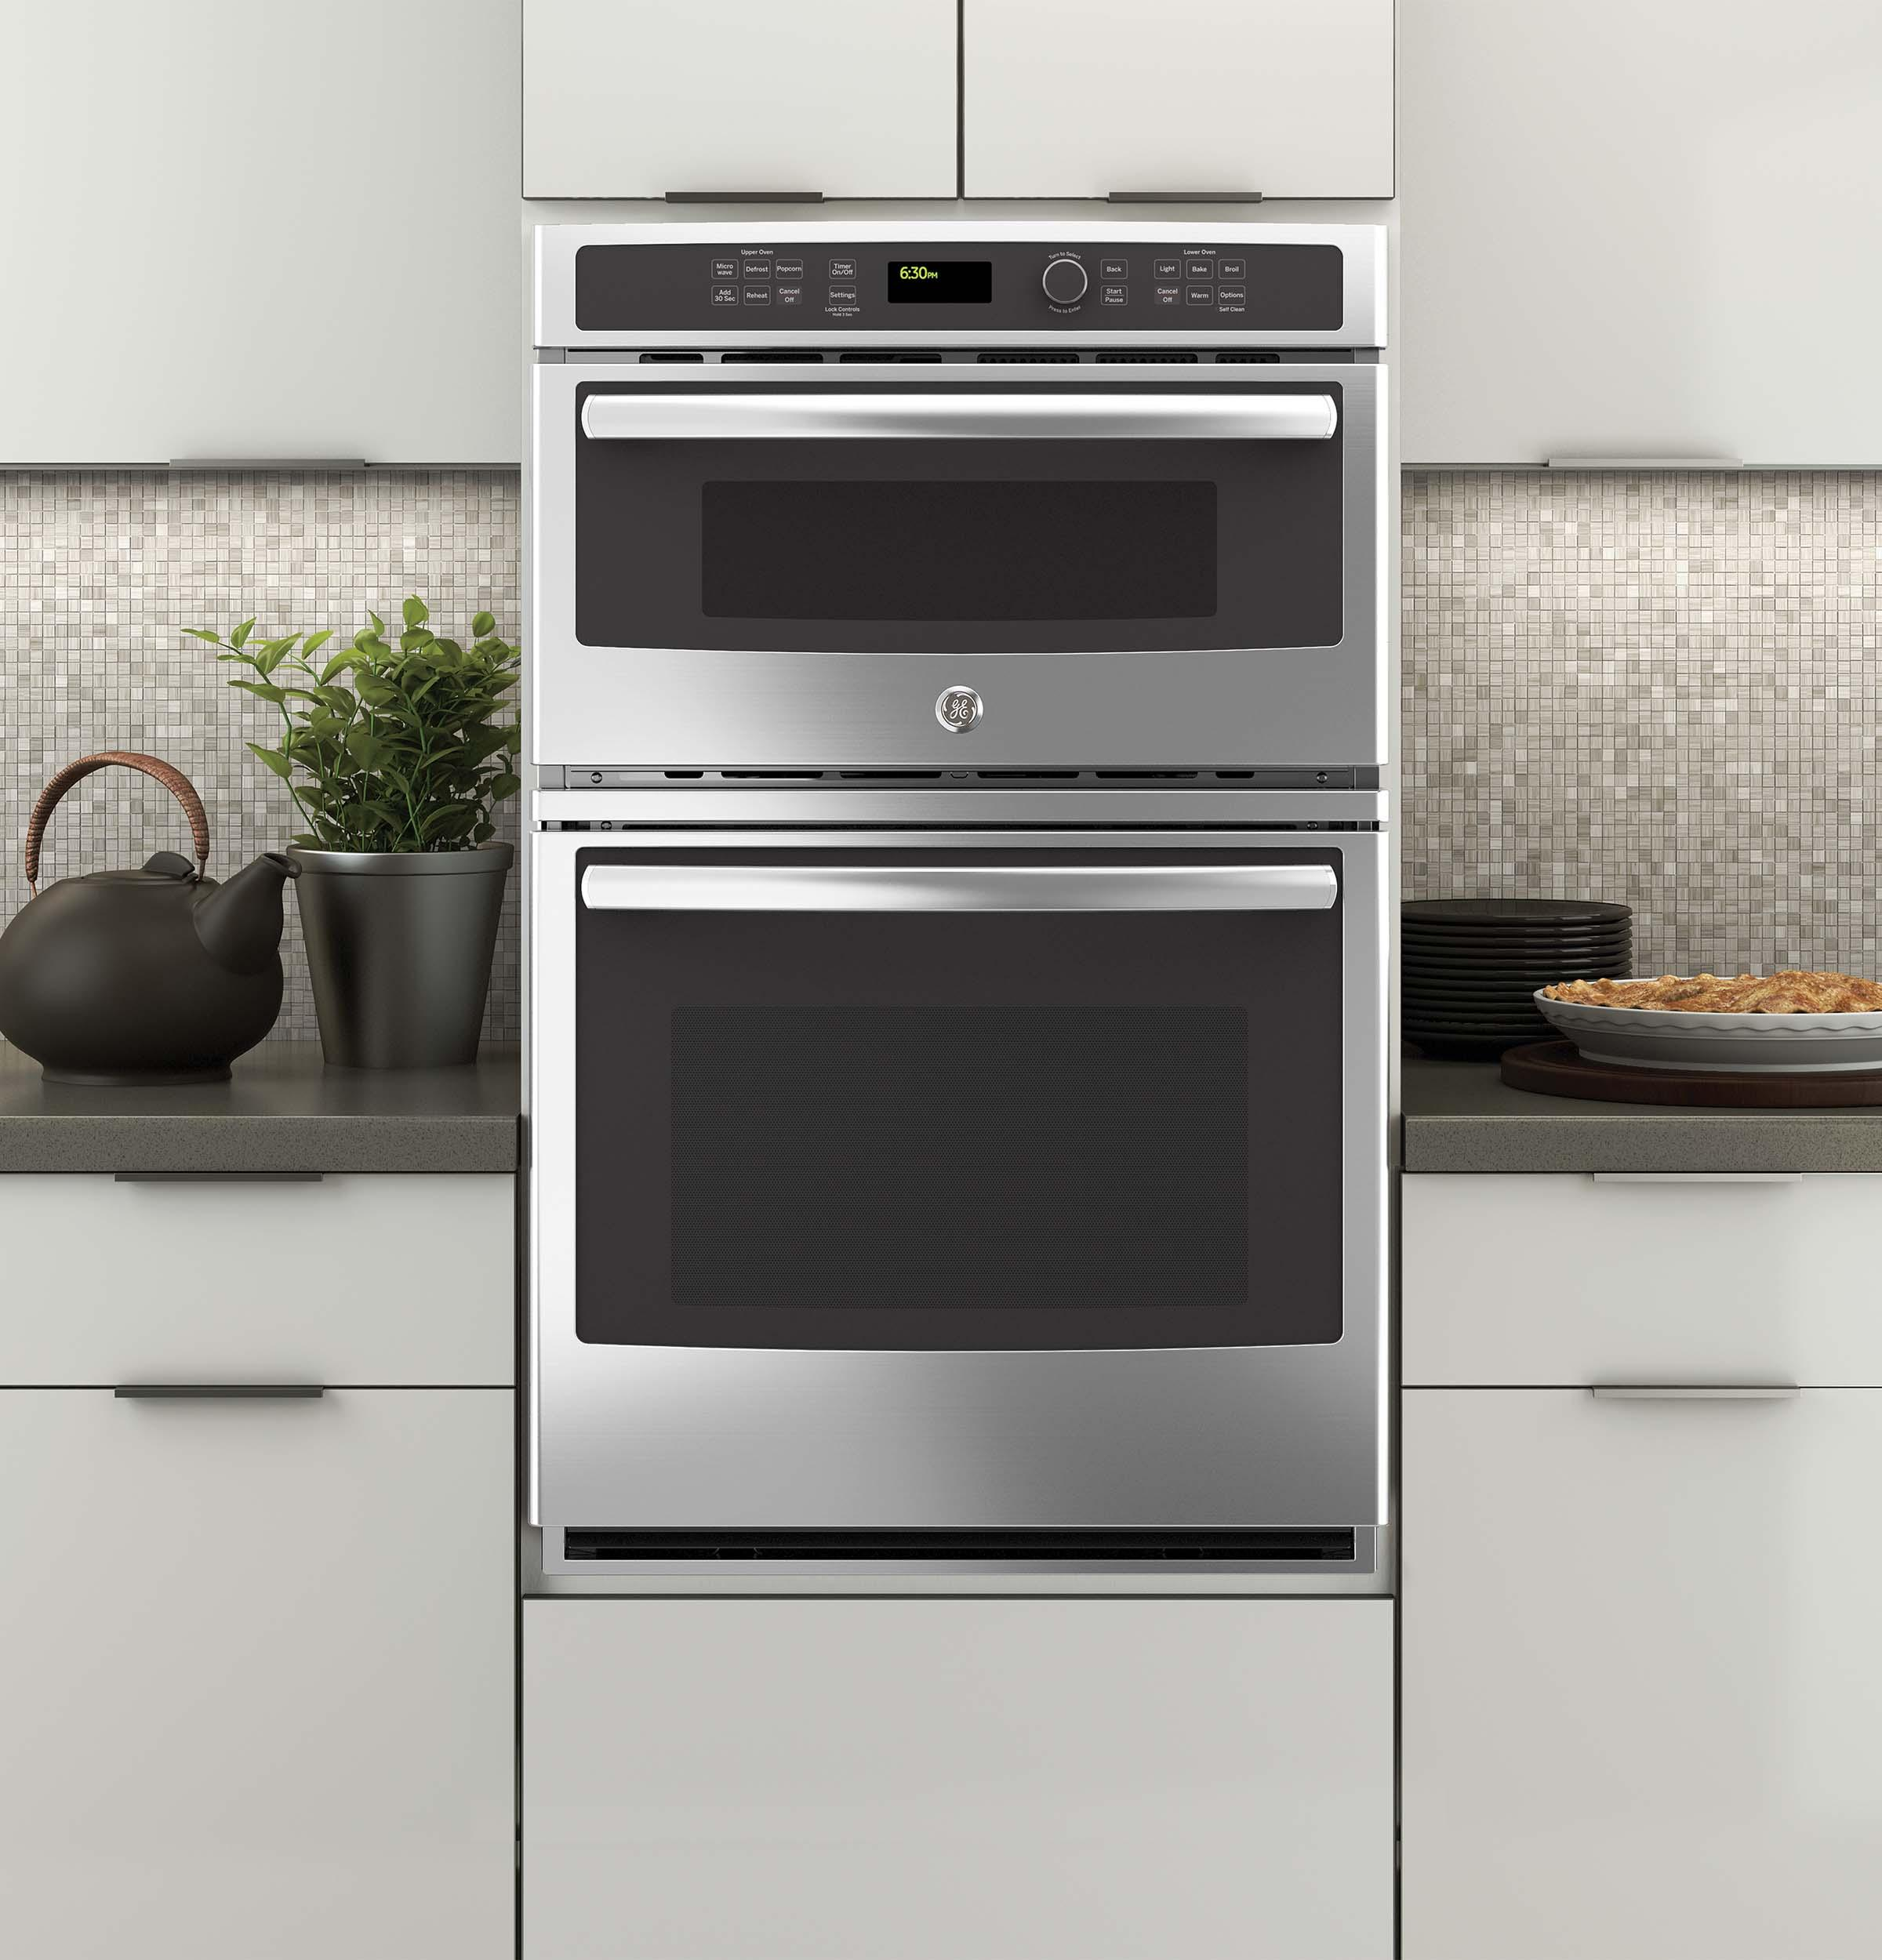 """GE Appliances Electric Wall Ovens 27"""" Built-In Combination Microwave/Oven - Item Number: JK3800SHSS"""